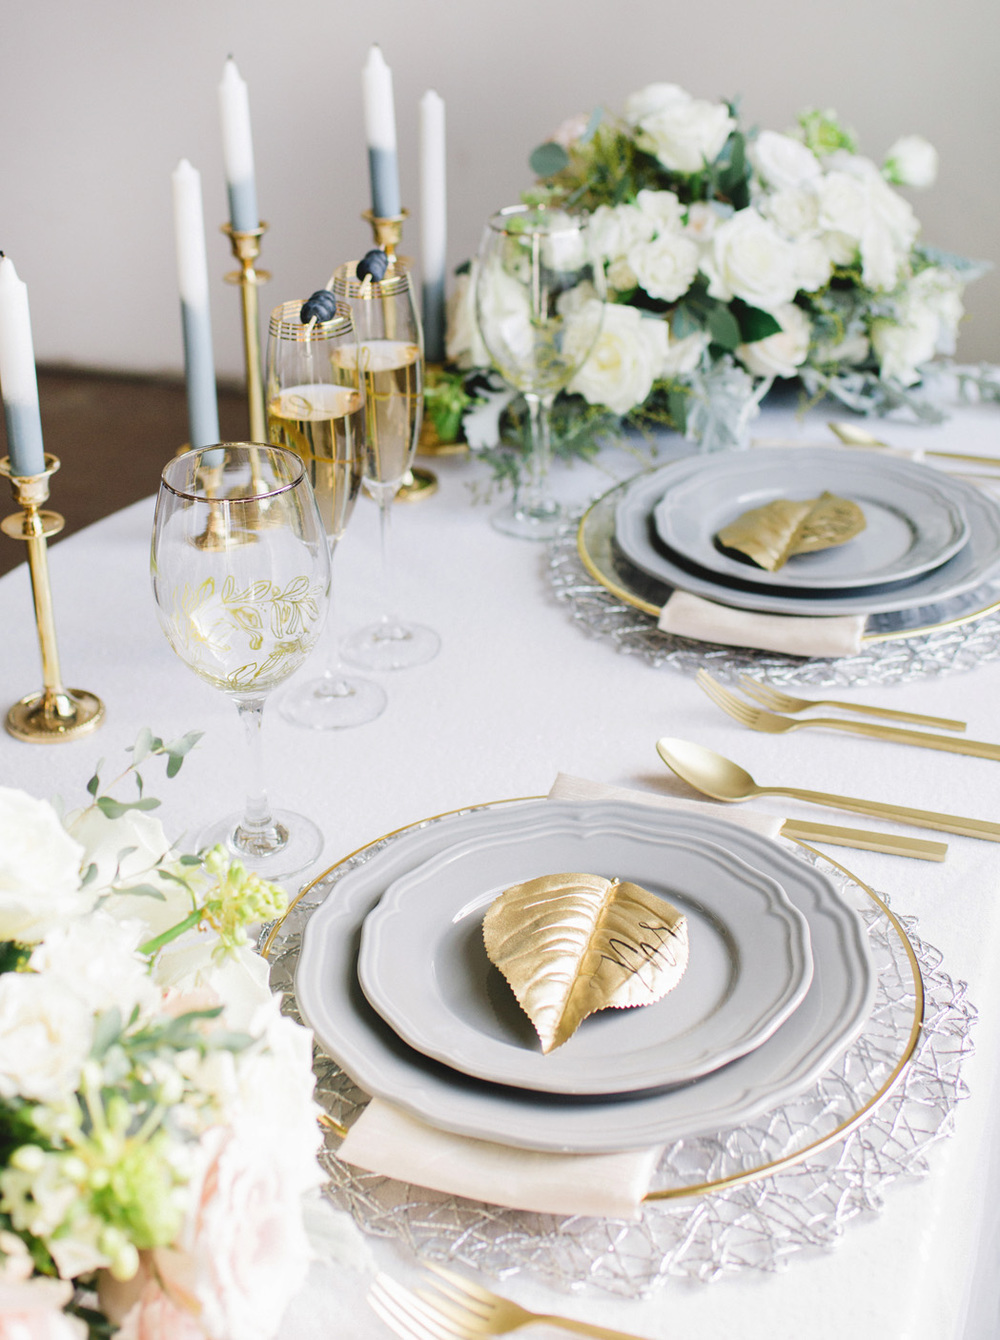 100 Layer Cake: Classic Luxe Wedding Inspiration. Click for more.